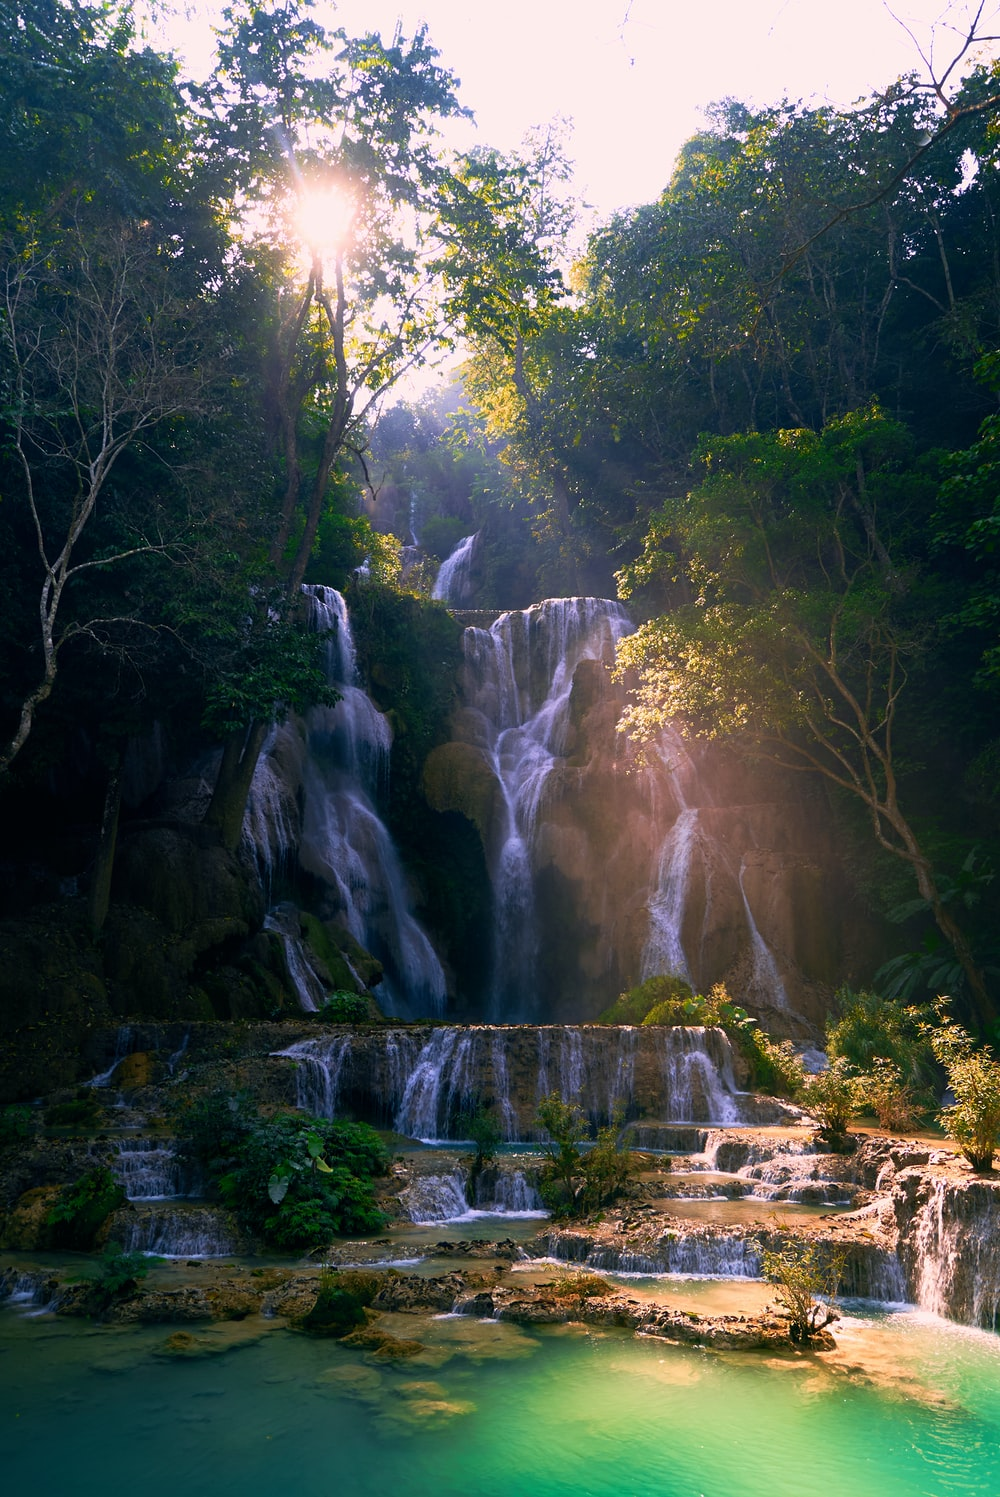 waterfalls in the middle of the forest during daytime